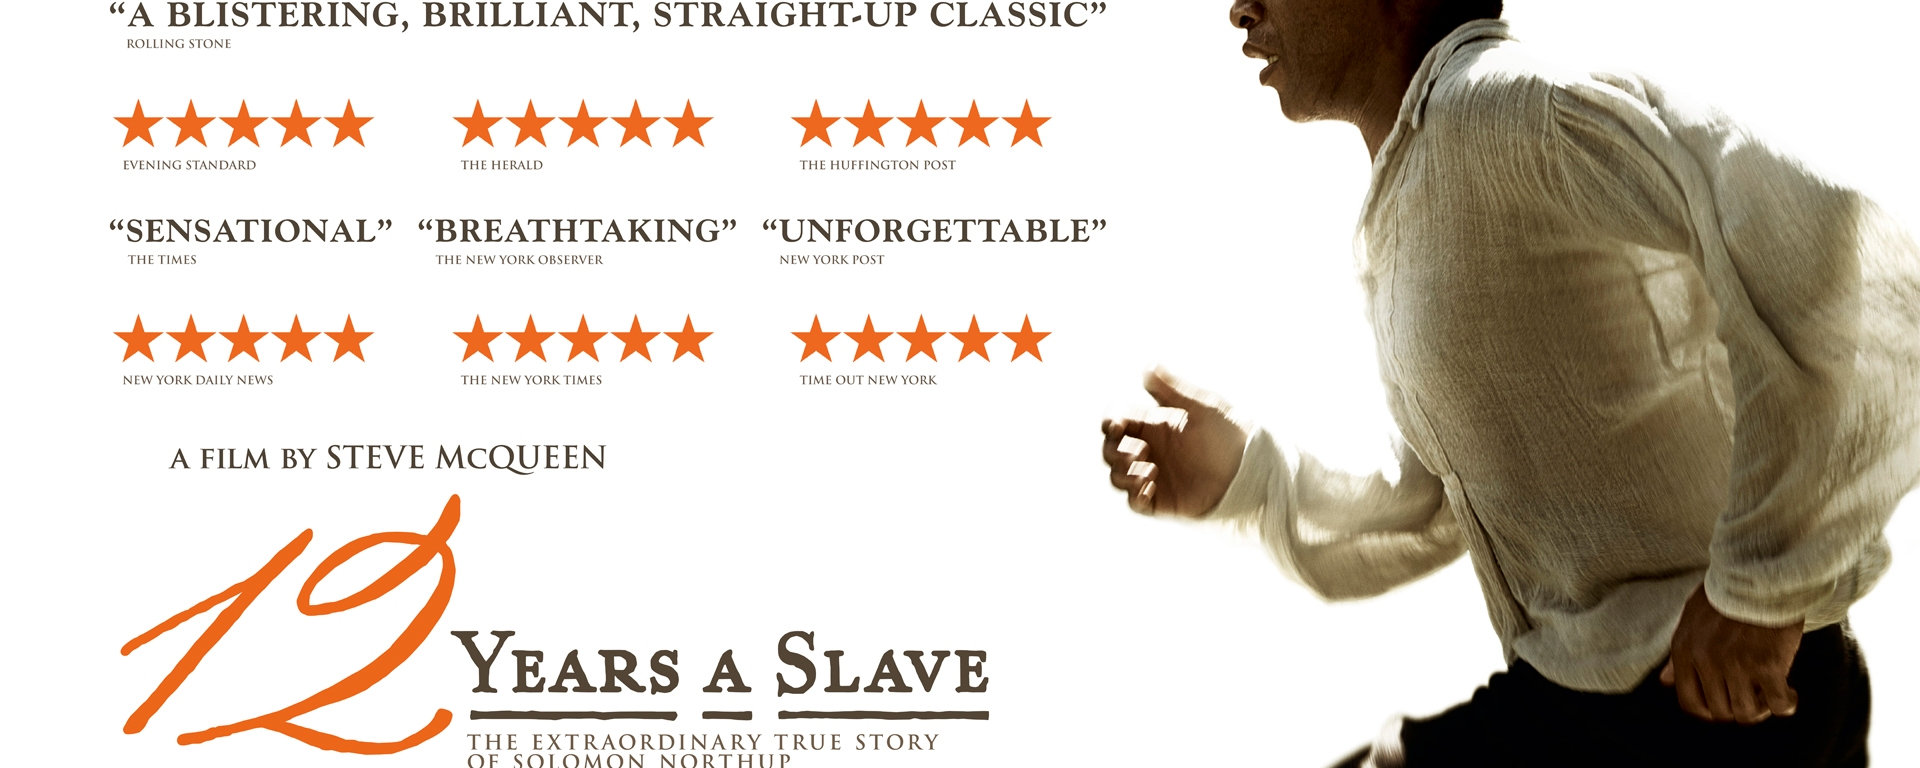 essay on 12 years a slave